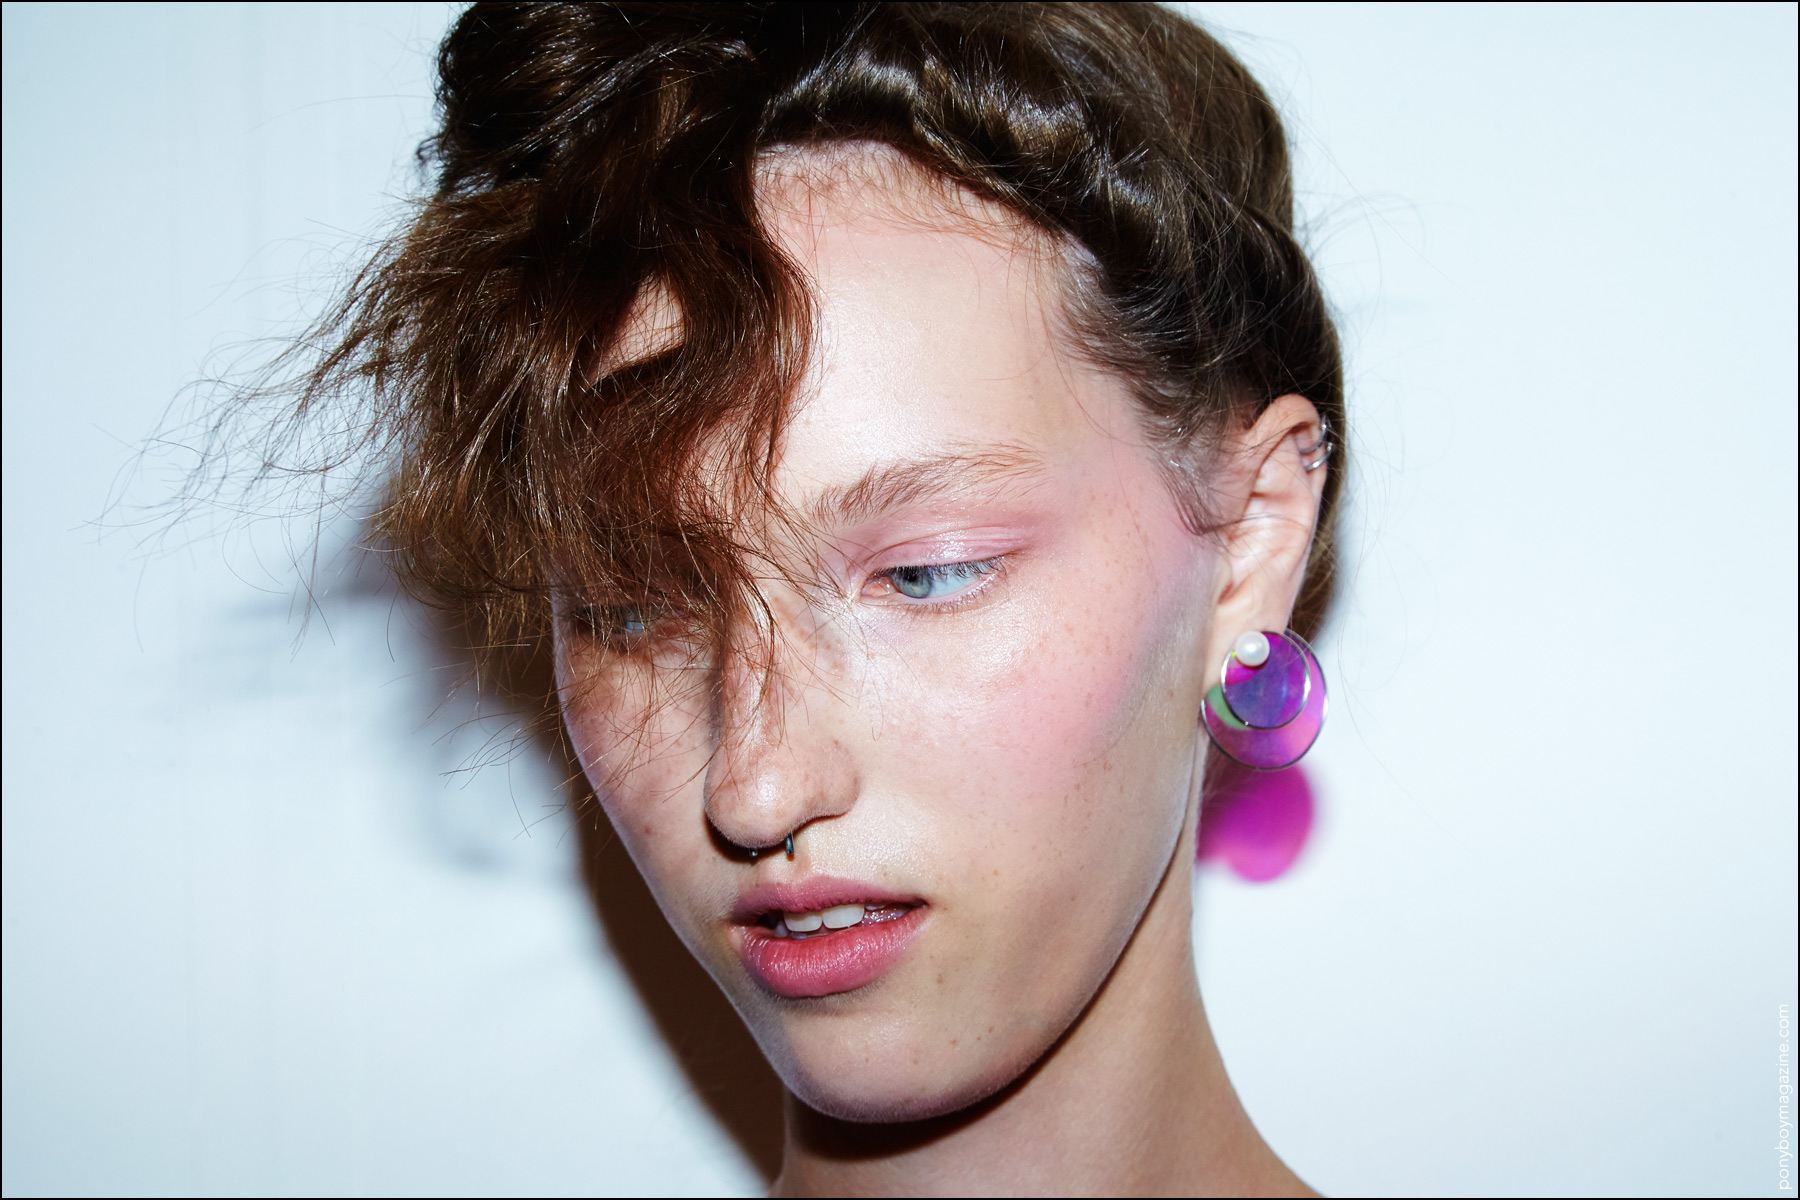 A close-up shot of a plastic disc earring designed by Adam Selman for S/S17. Photography by Alexander Thompson for Ponyboy magazine.